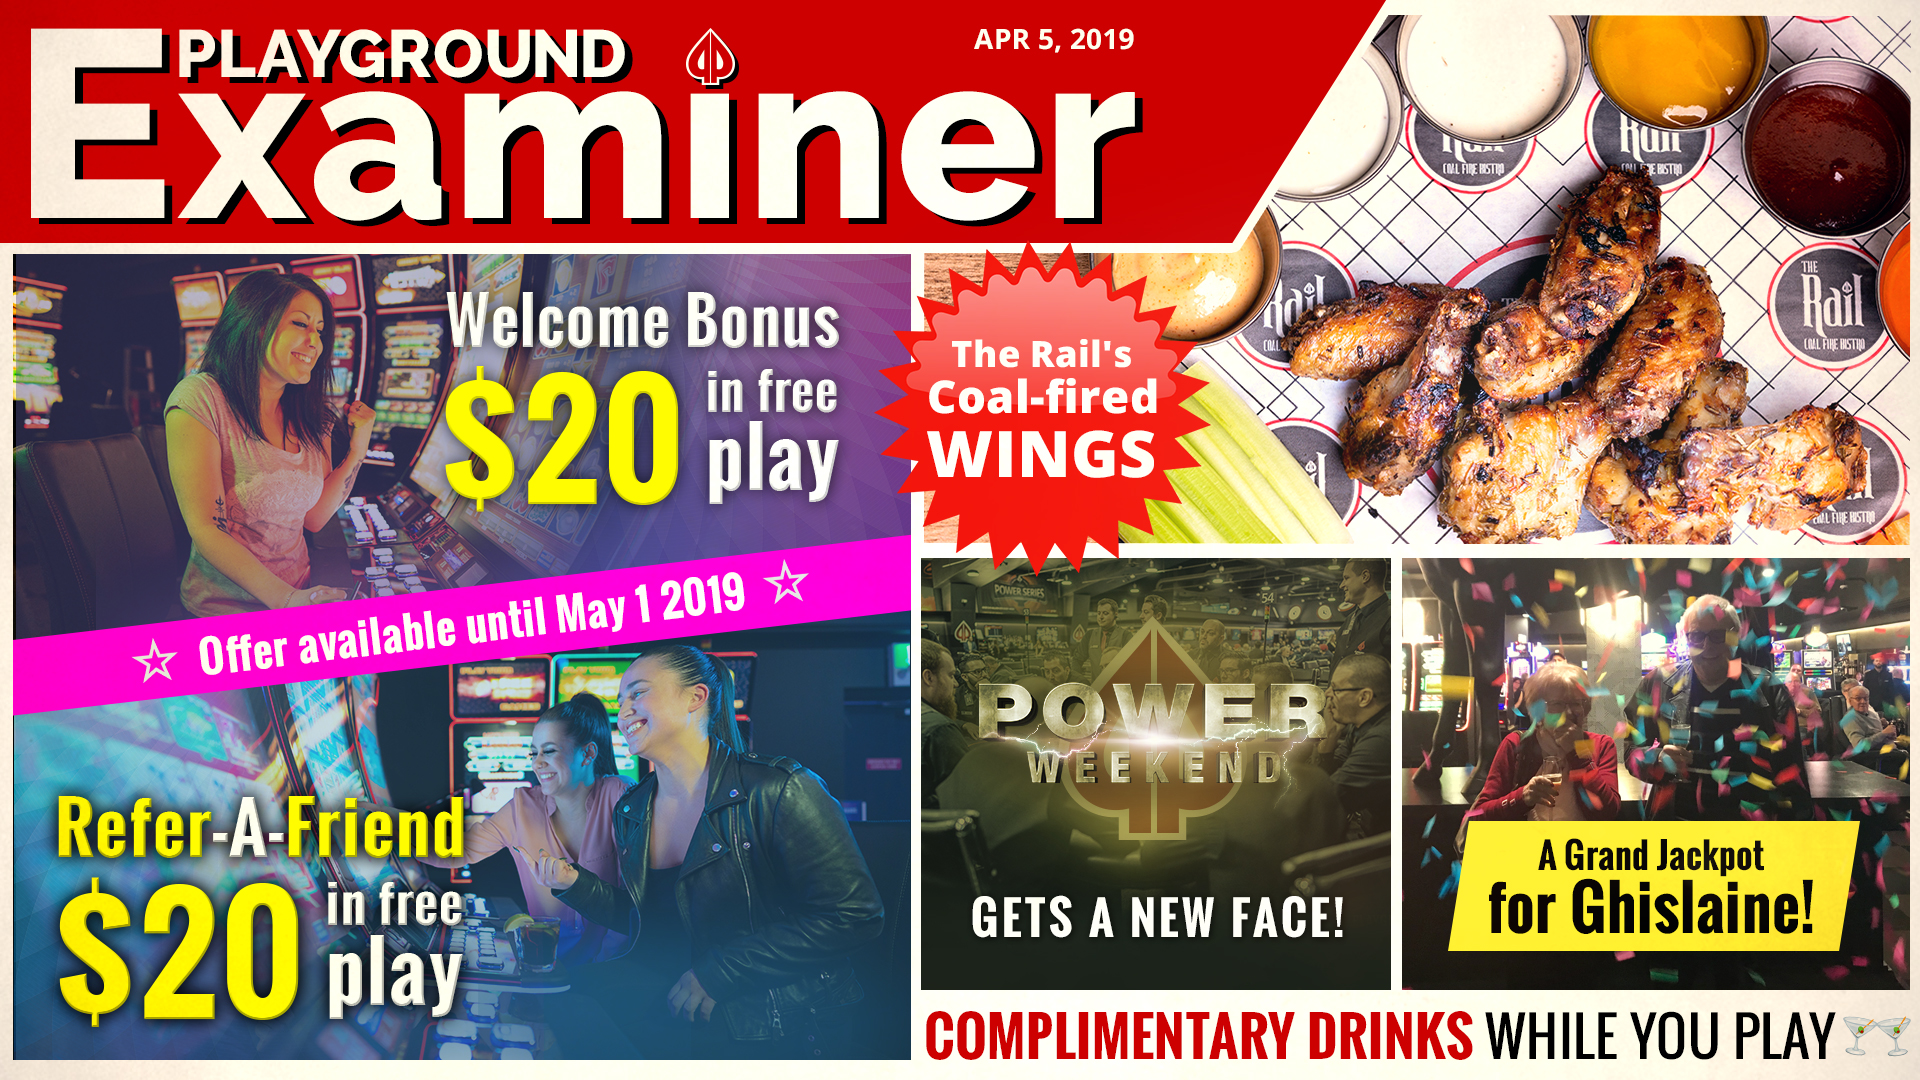 Playground, your full-service entertainment destination!